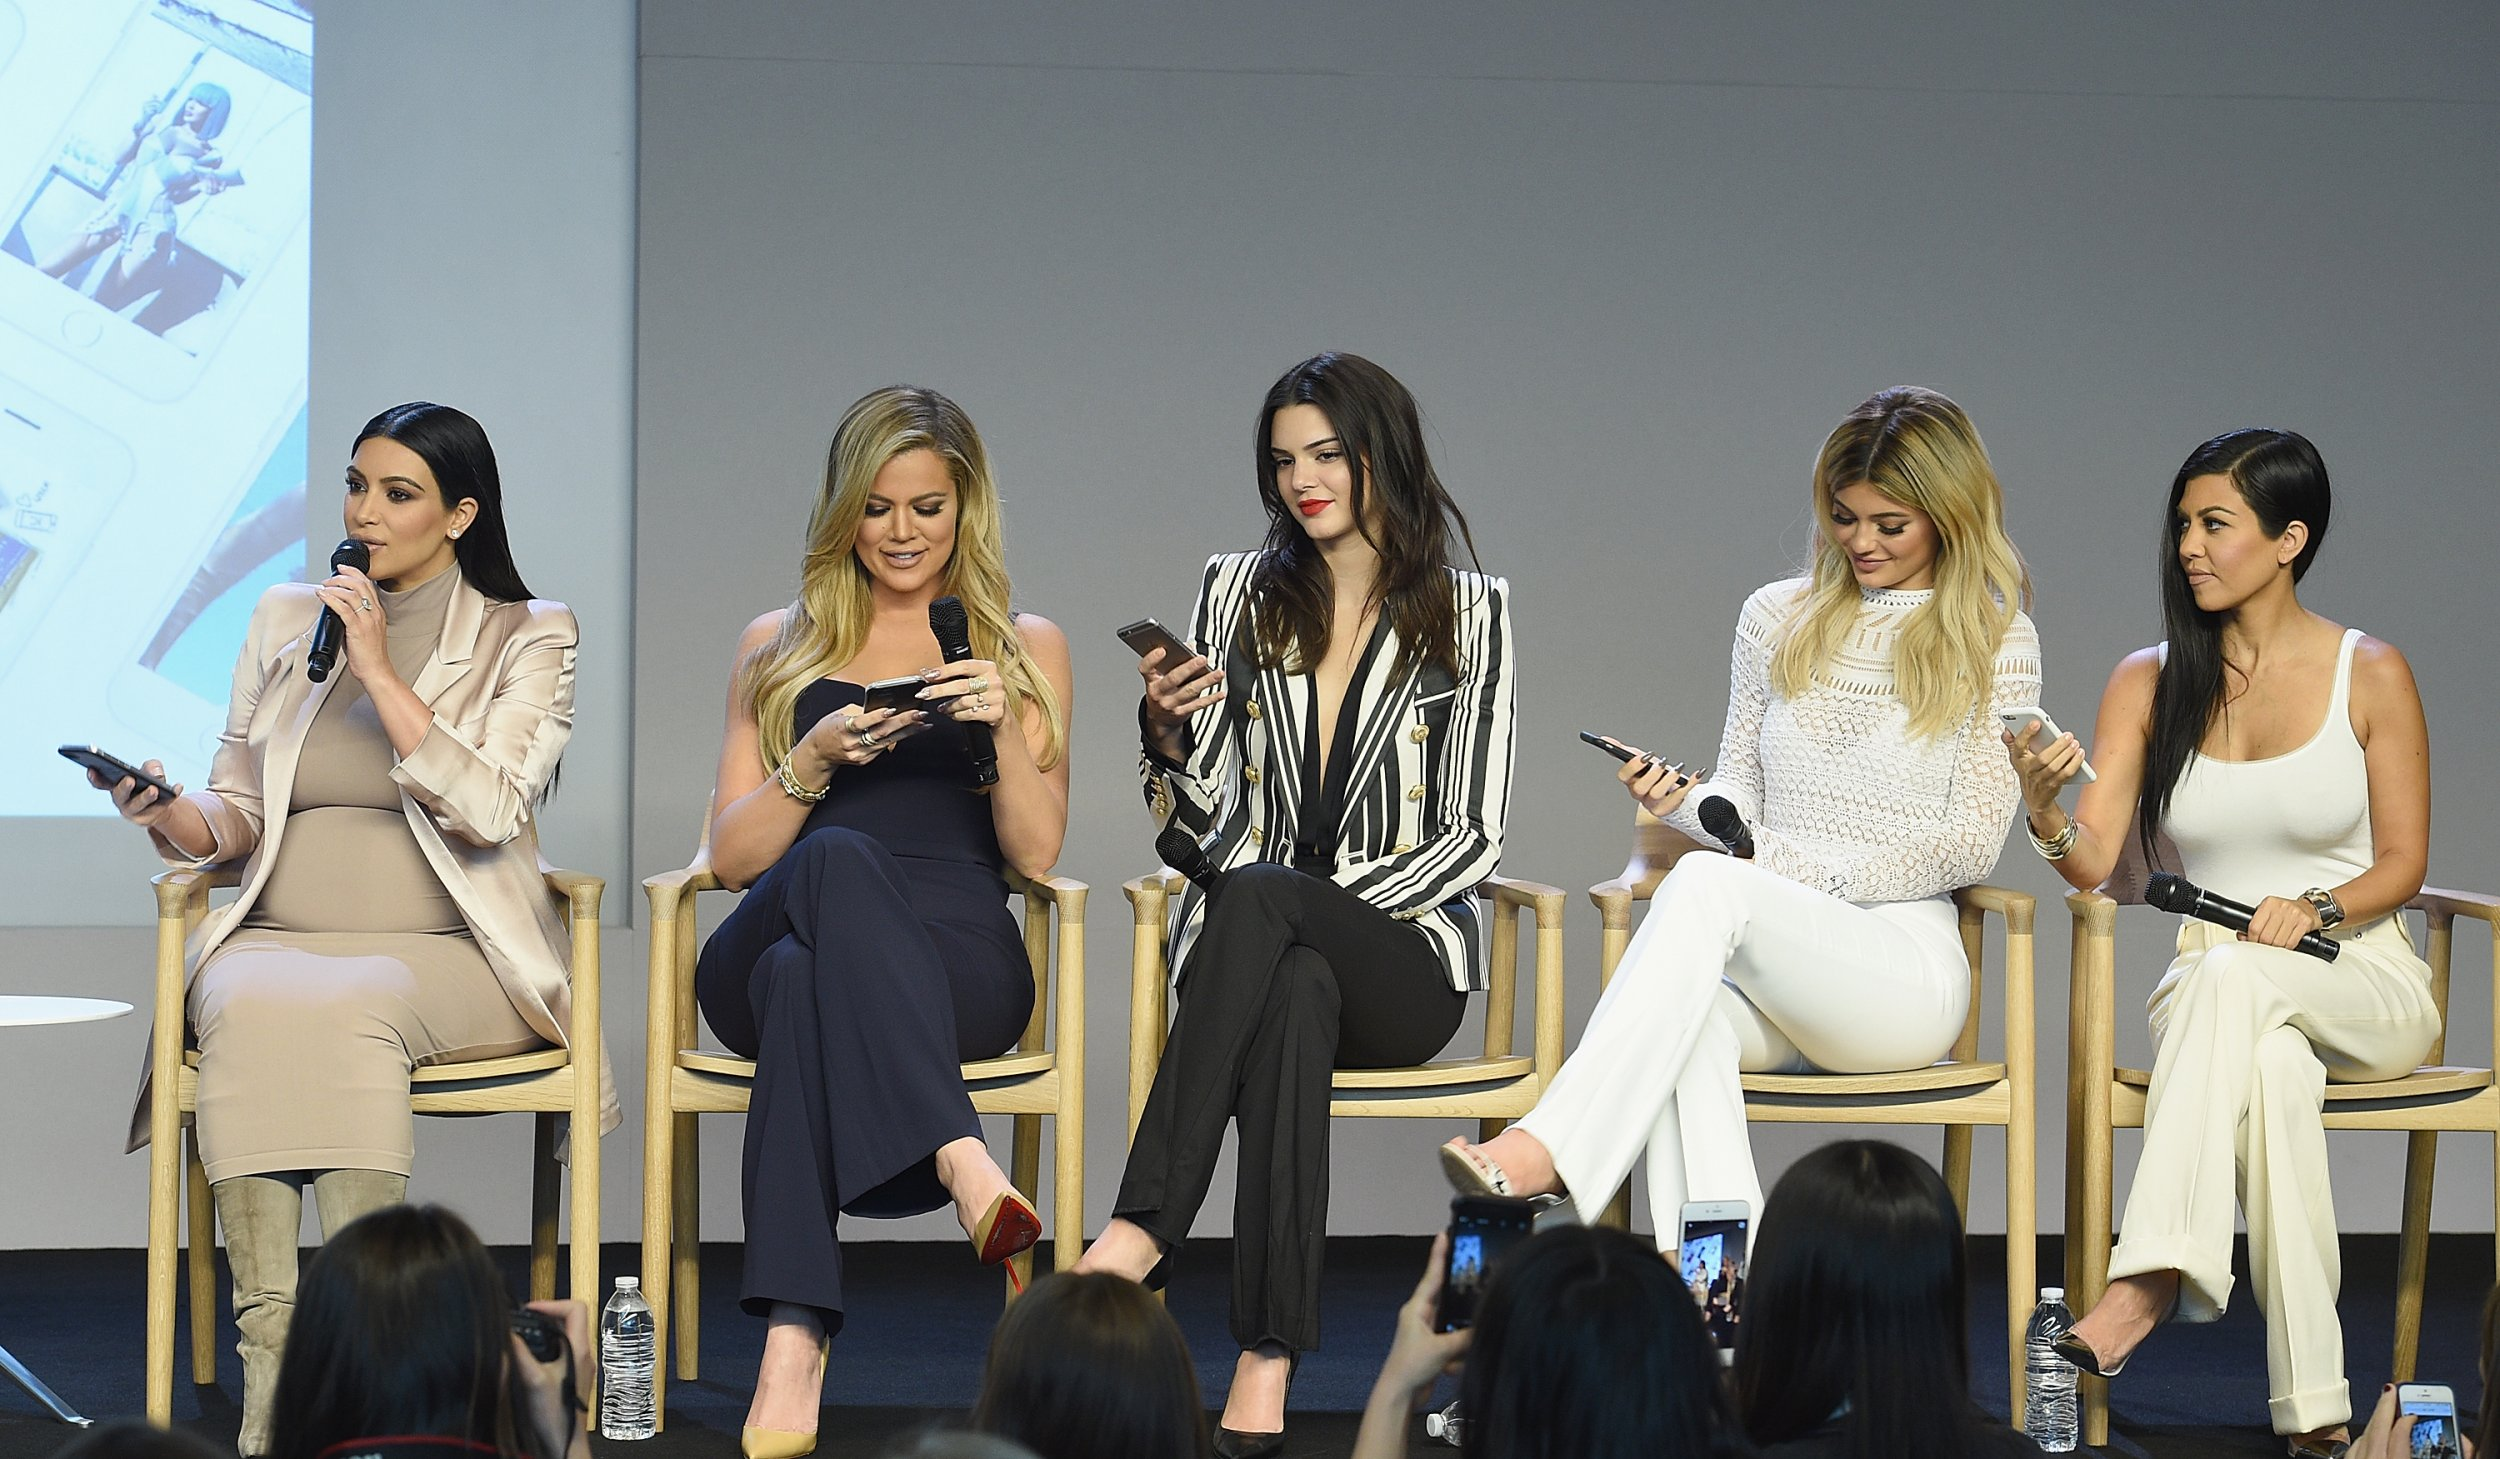 Kim, Khloe, Kourtney, Kylie and Kendall